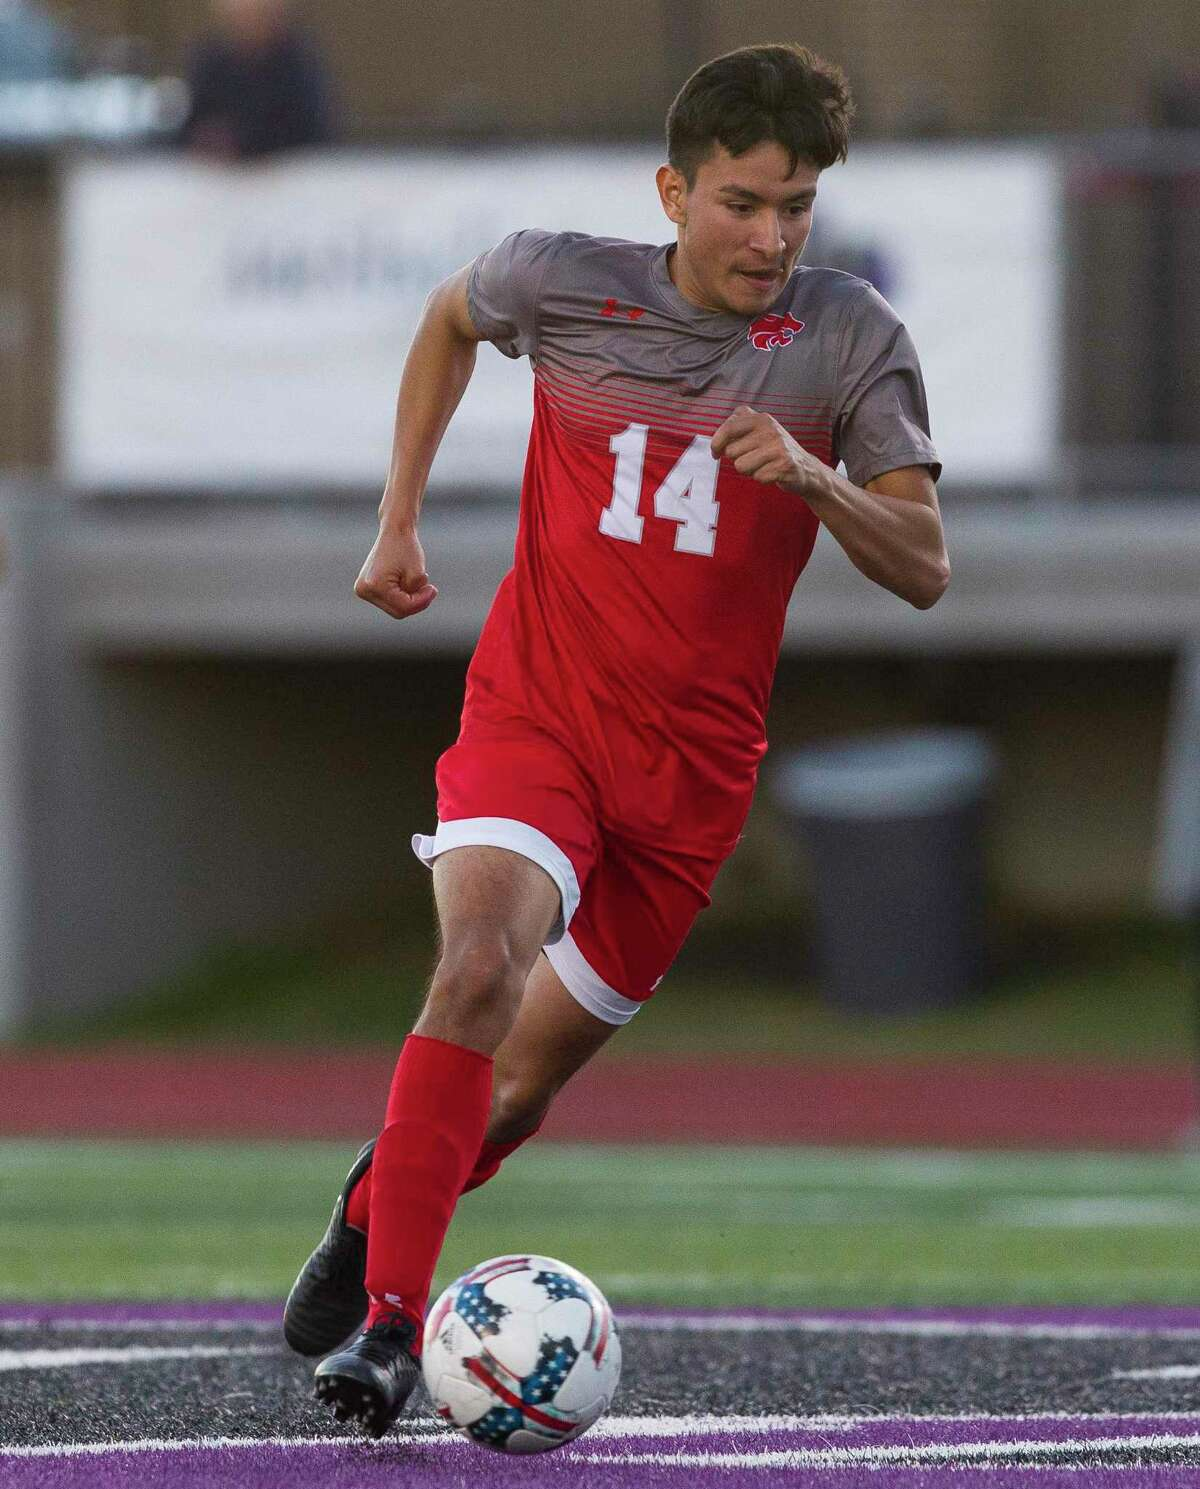 Hector Villegas #14 of Splendora dribbles the ball in the first period of a high school soccer match during the Kat Cup at Berton A. Yates Stadium, Saturday, Jan. 5, 2019, in Willis.